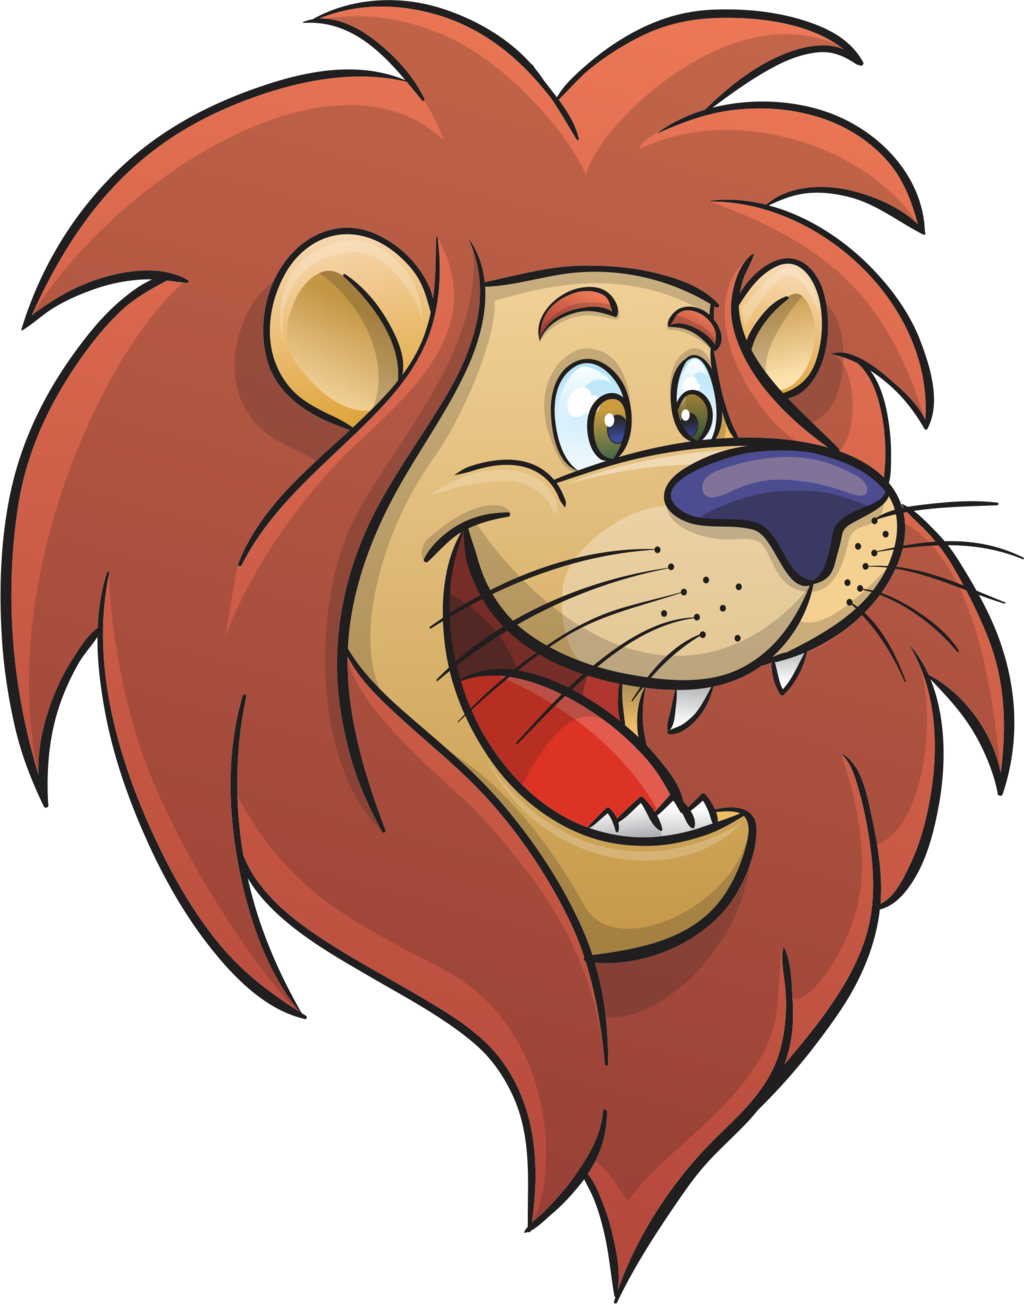 Ki nkzjbt png animals. Oil clipart oliver